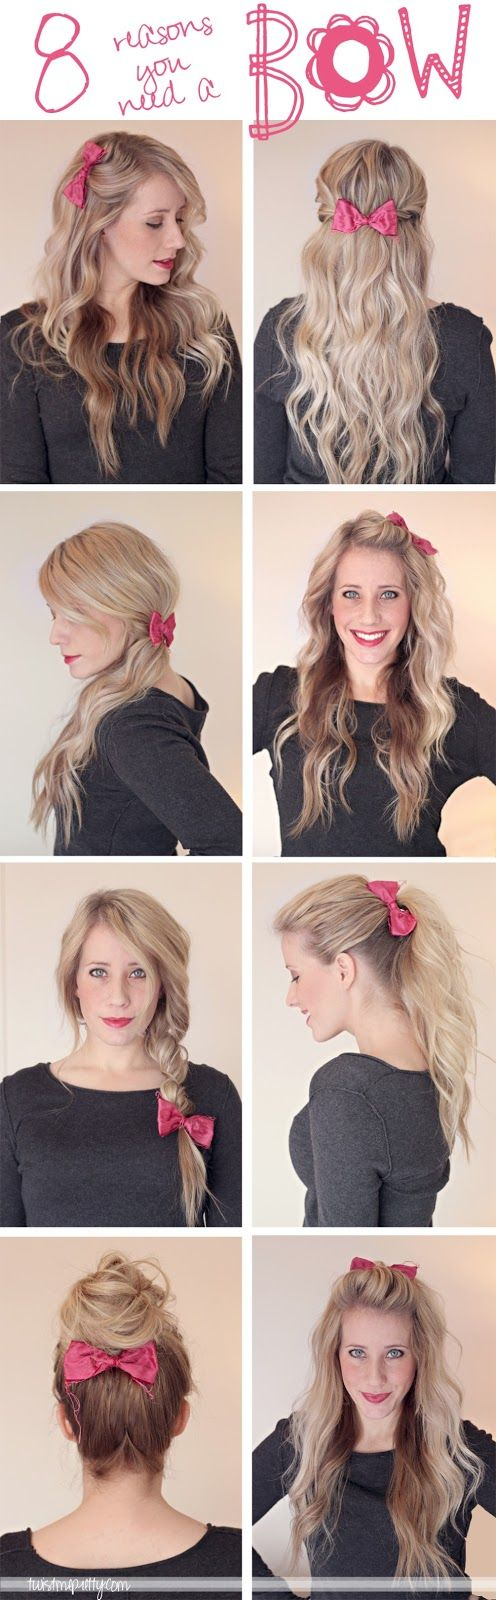 How to wear a bow - I've wanted to try more hair accessories